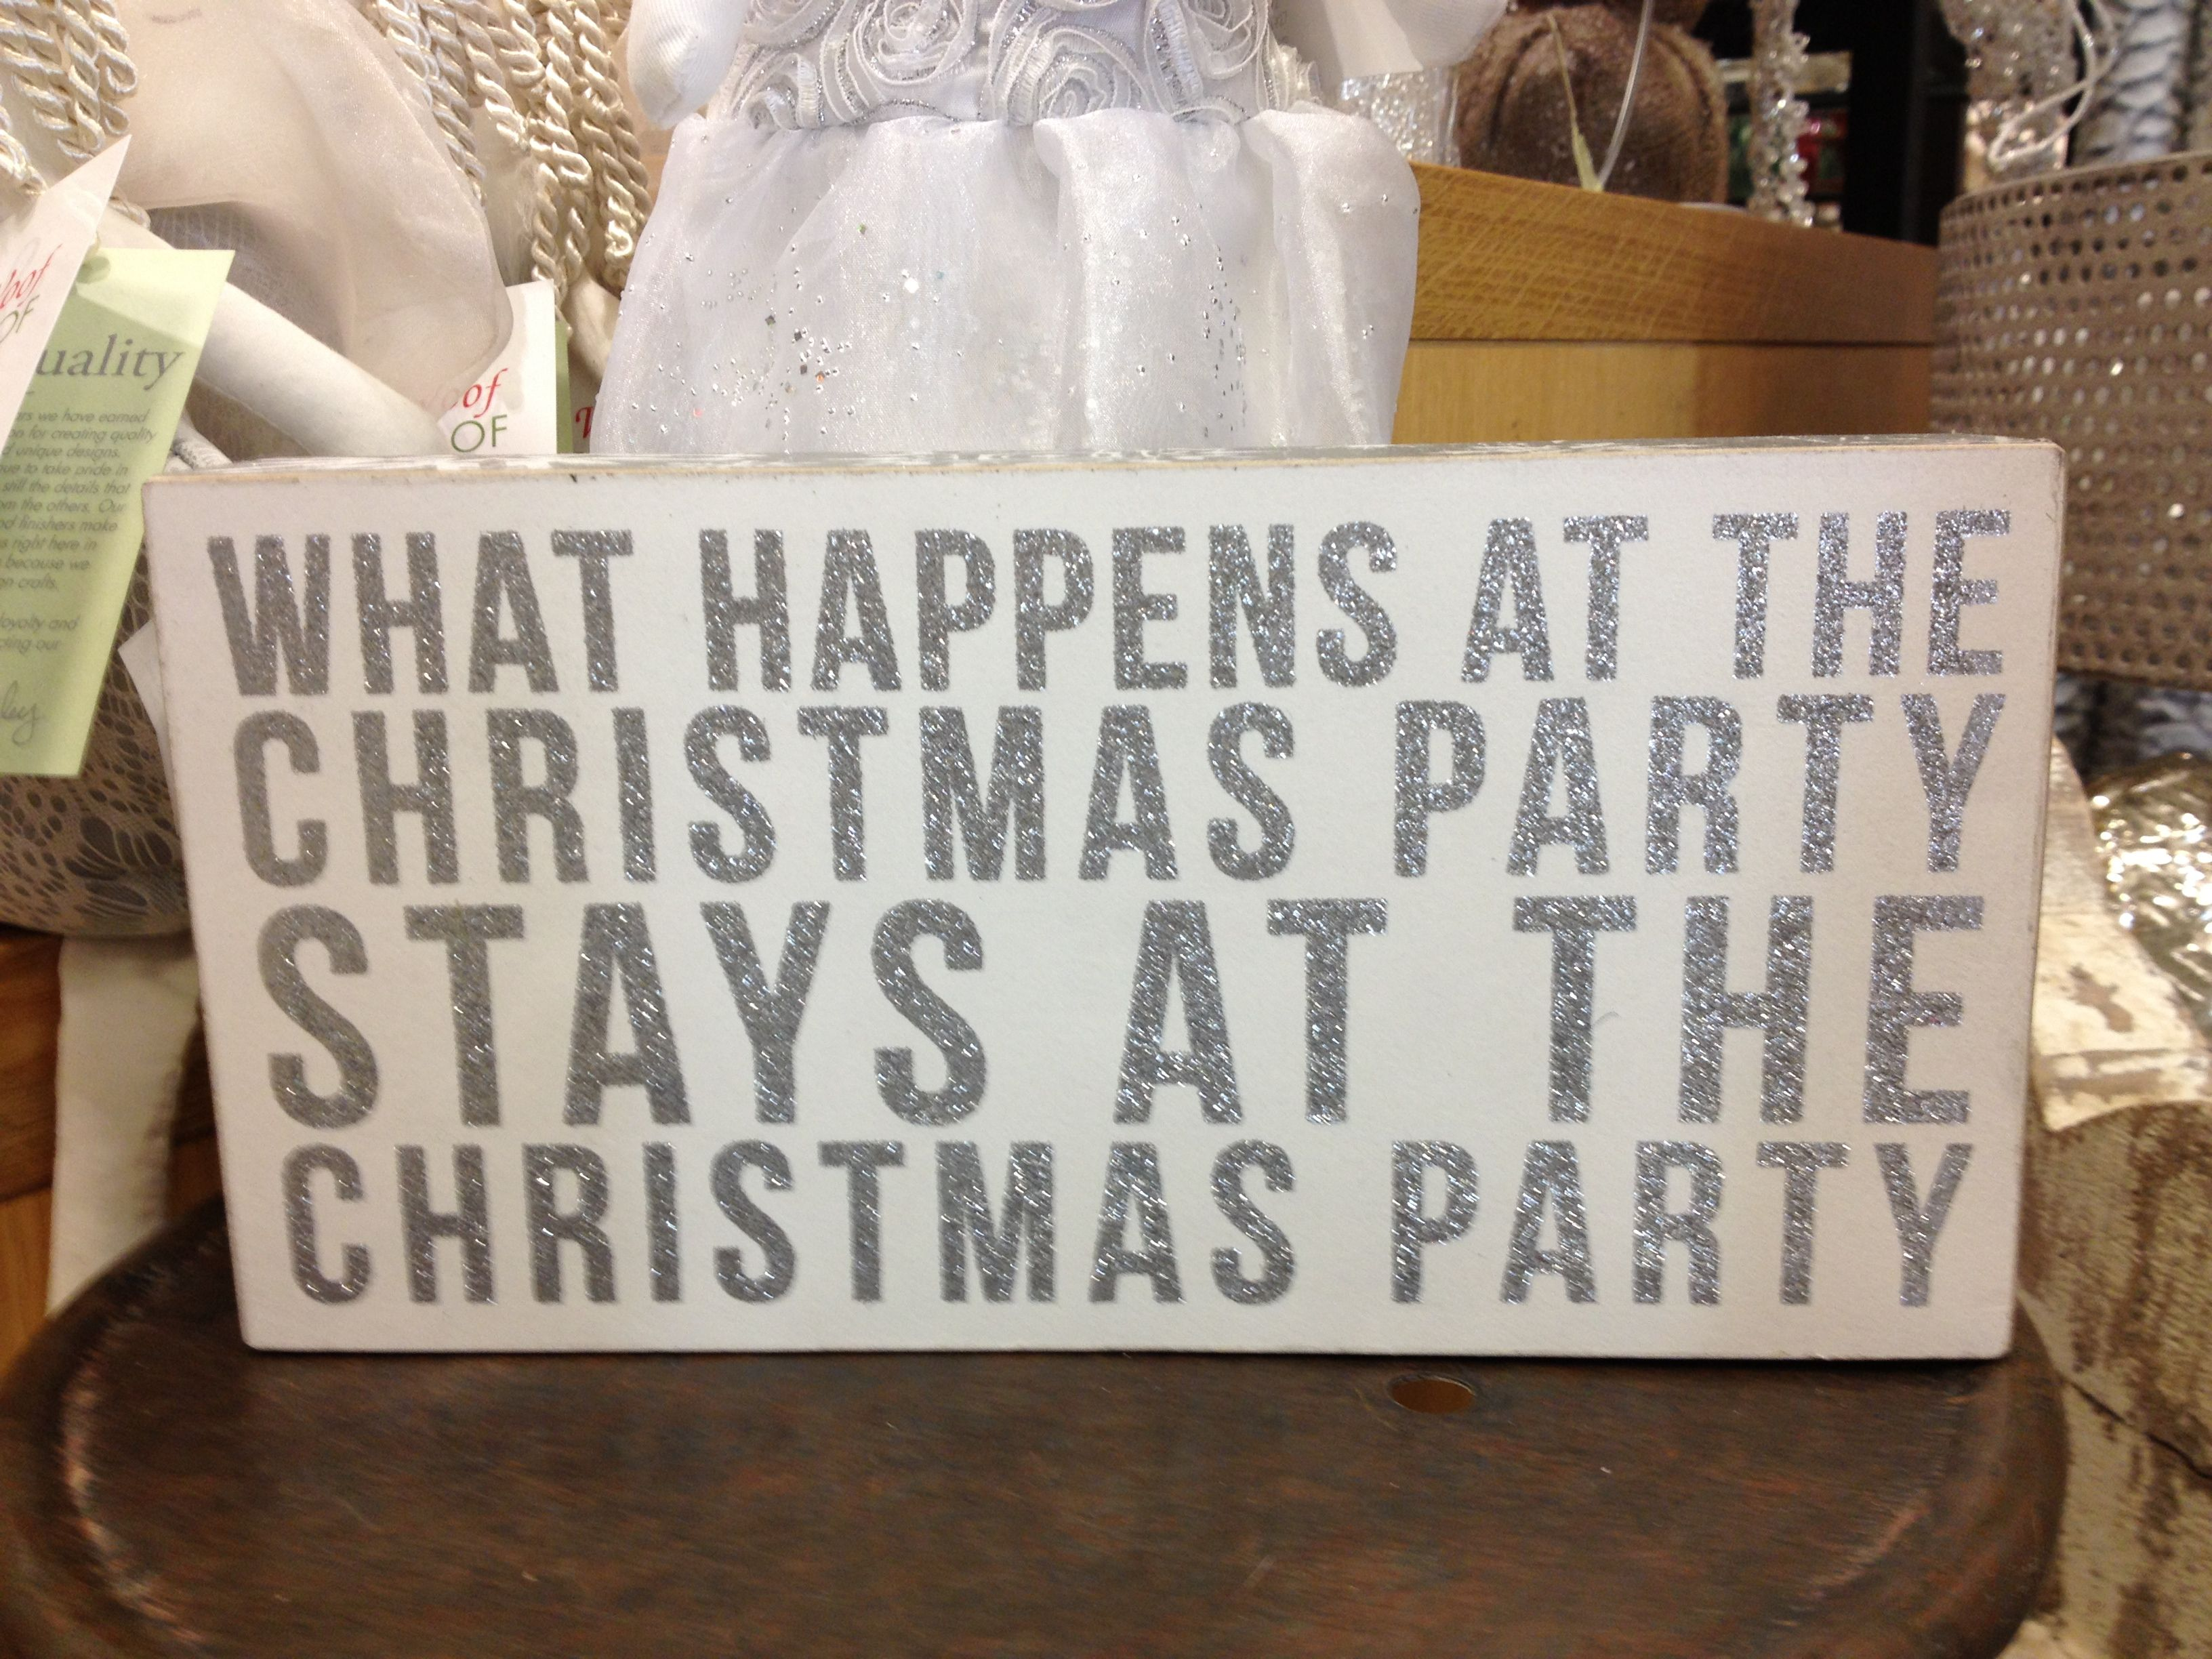 Friends Christmas Party Ideas Part - 22: Ugly Sweater Party Will Be Awesome!